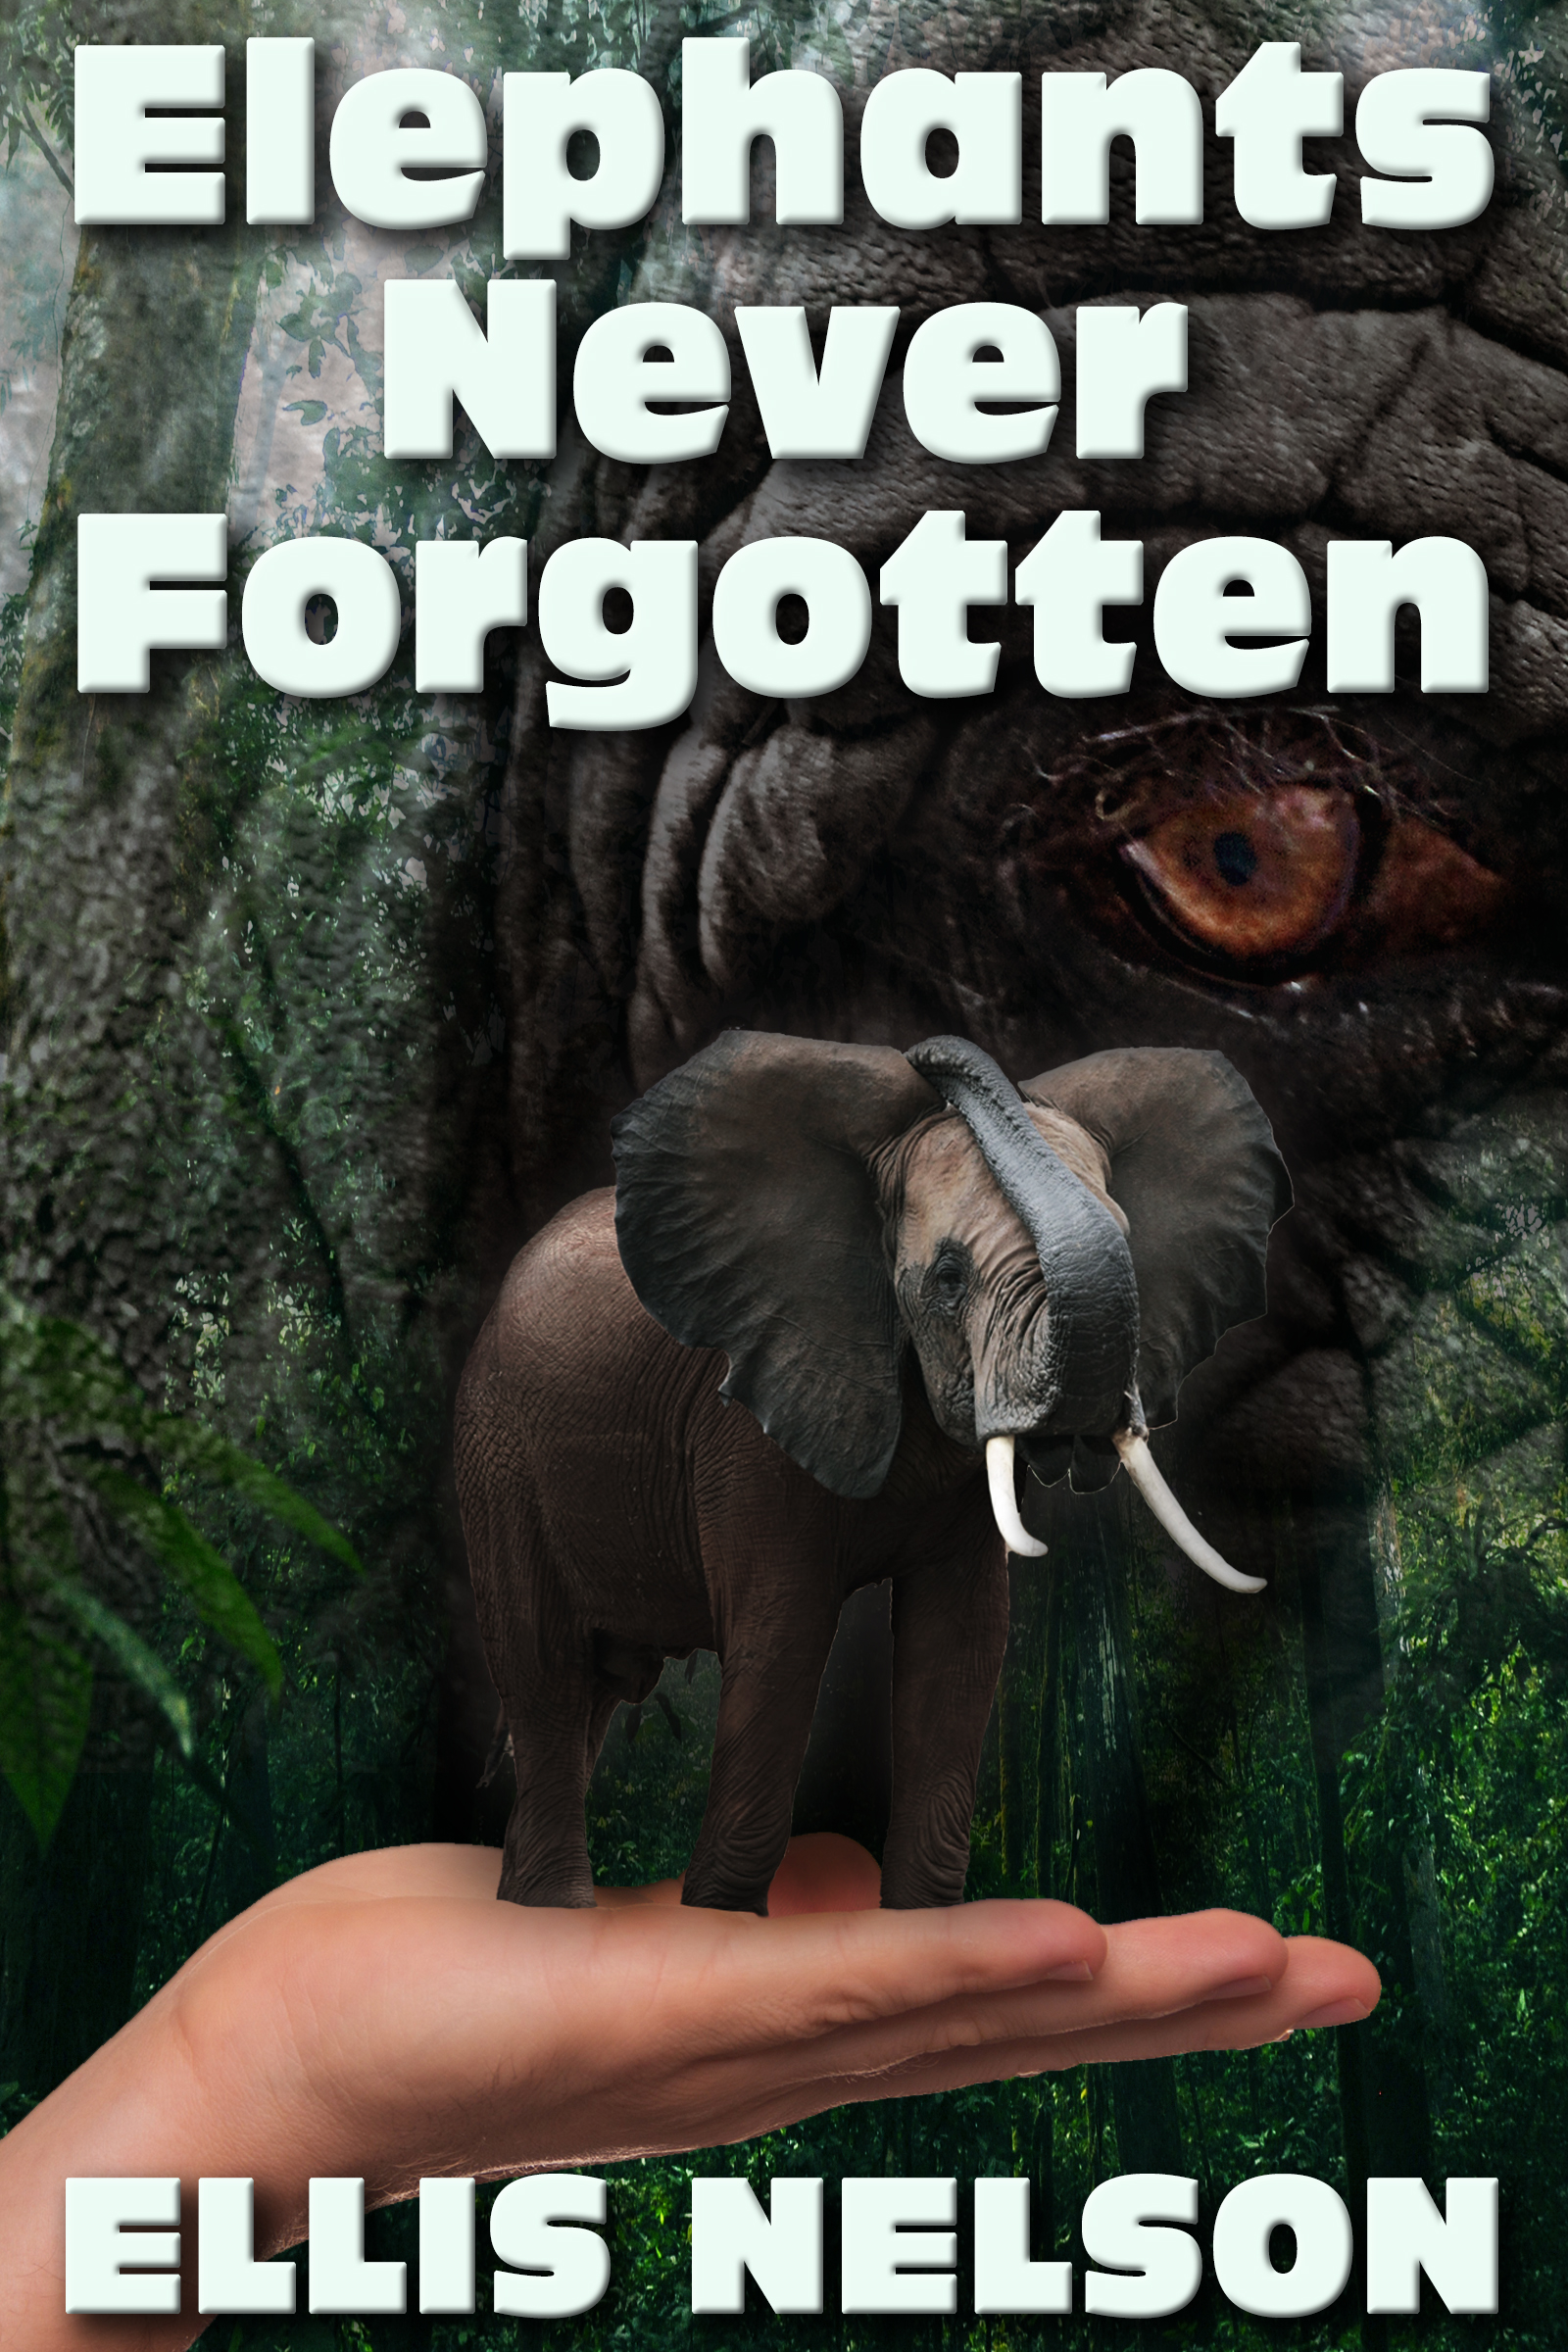 elephants-never-forgotten-without-logo